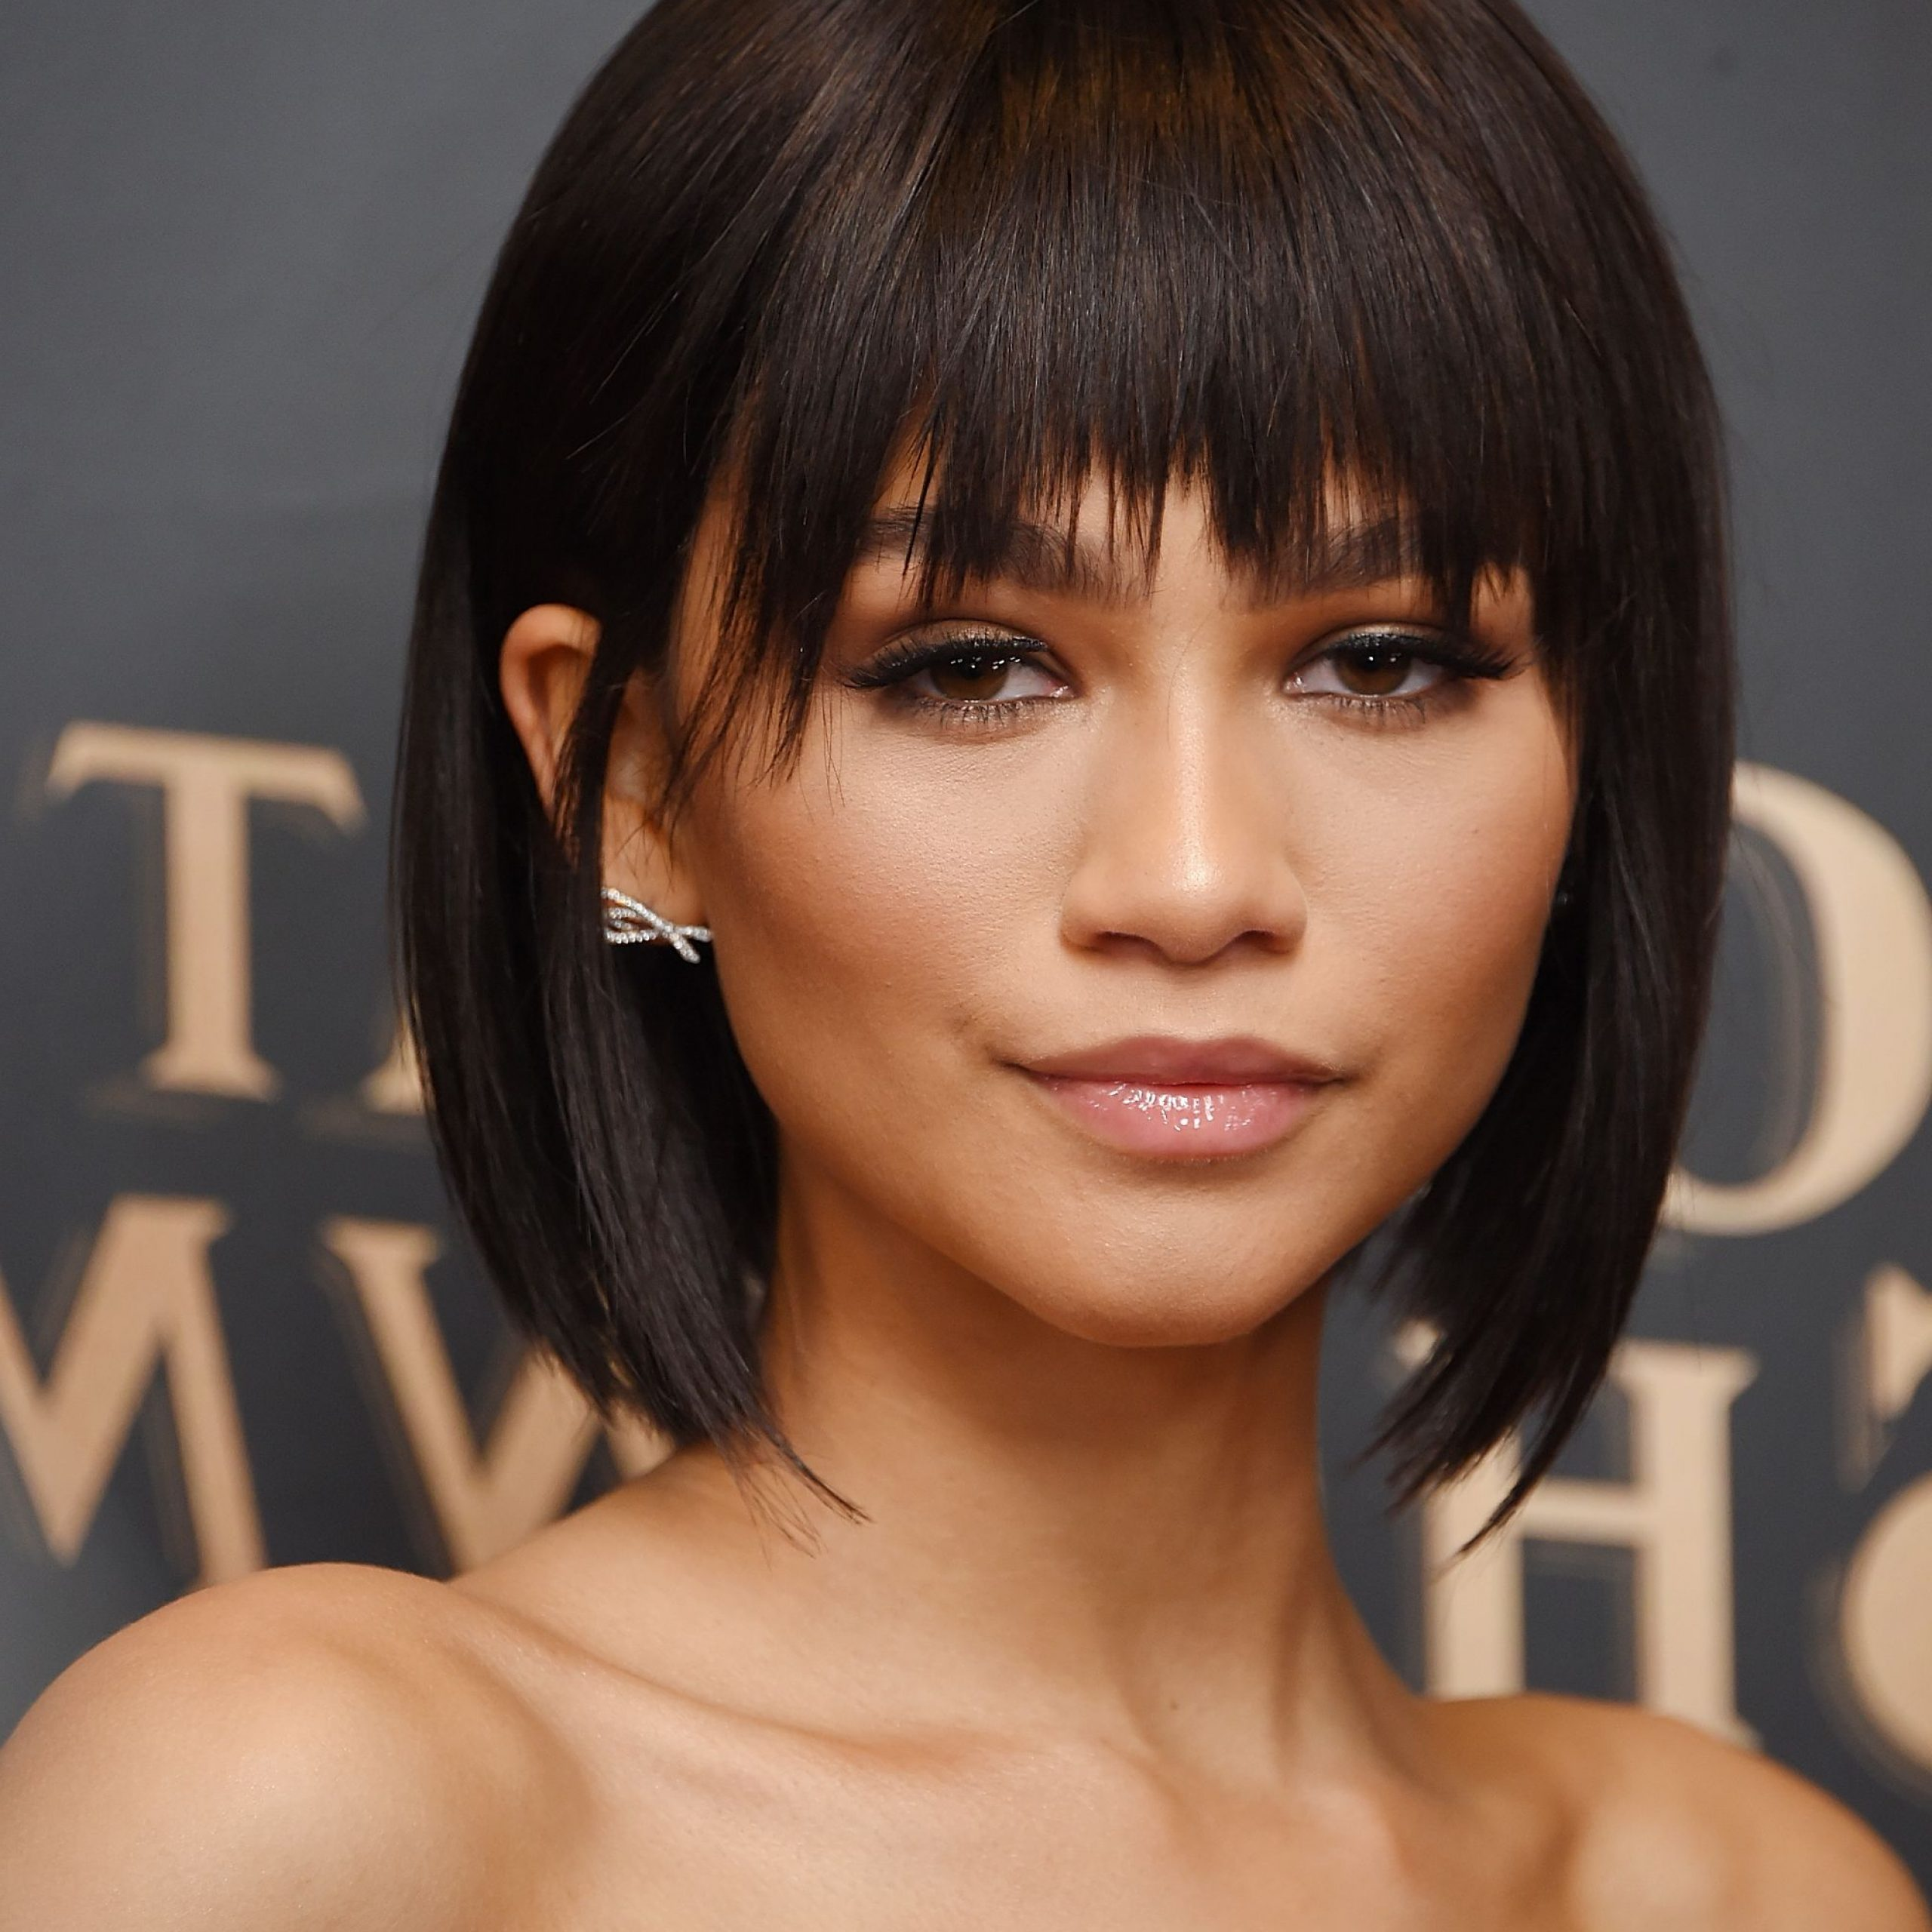 70 Best Bob Styles Of 2020 – Bob Haircuts & Hairstyles For Women Inside Trendy Bob Hairstyles With Bangs (View 14 of 20)